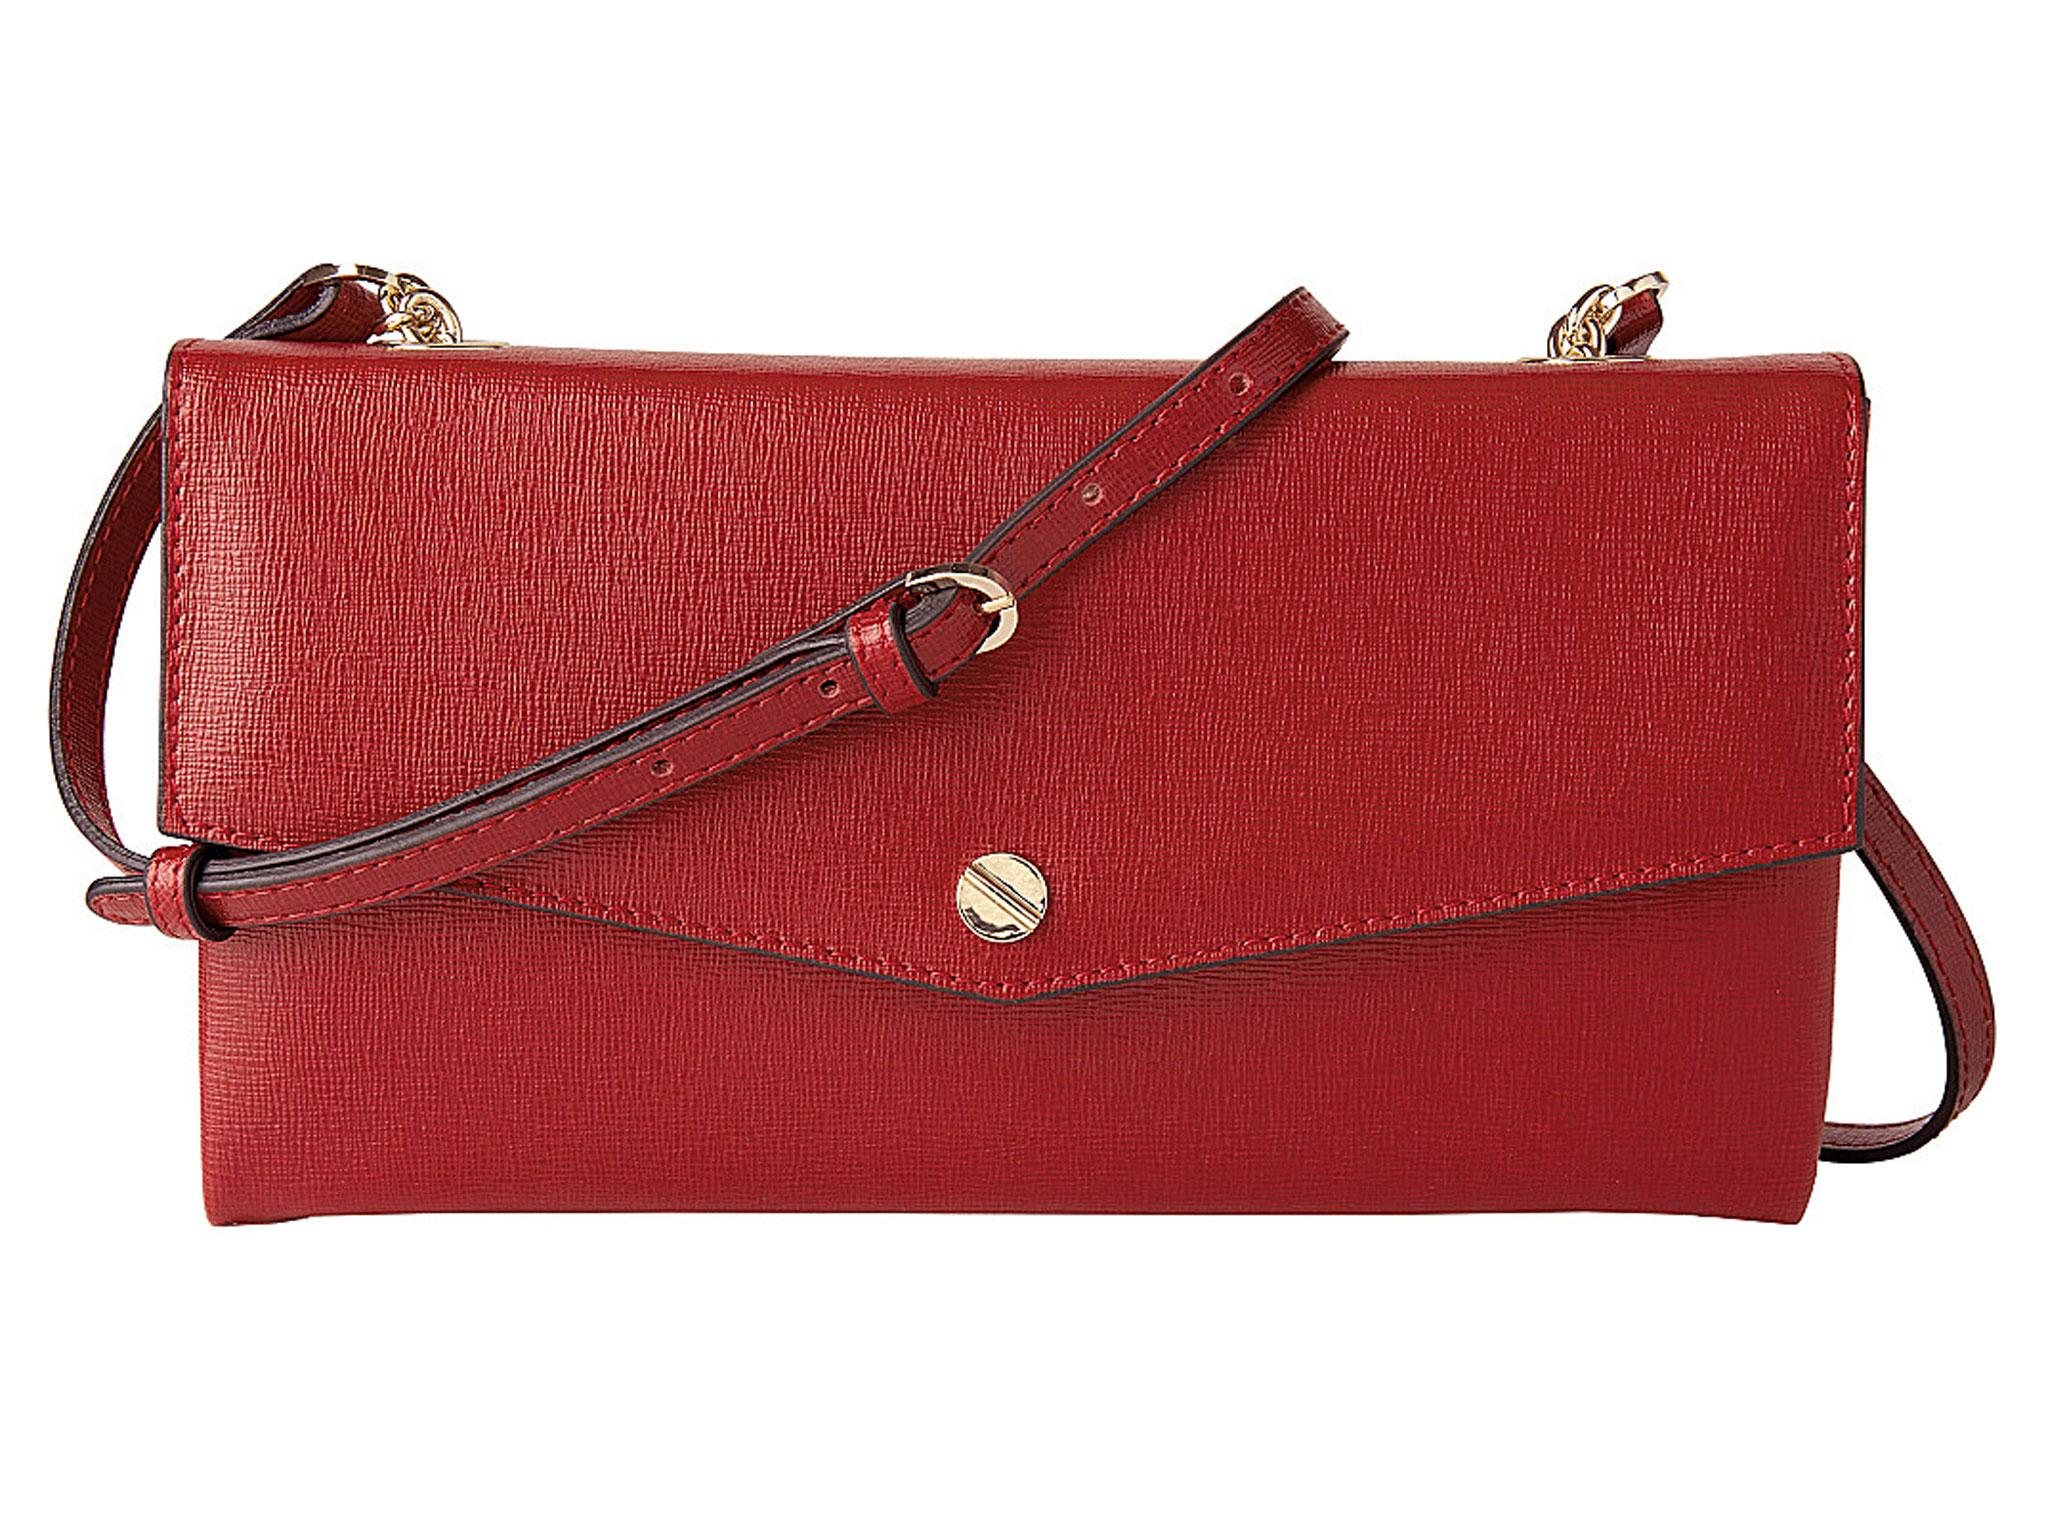 624430b5ff5 LK Bennett, Dakoda Leather Shoulder Bag  £145, Selfridges